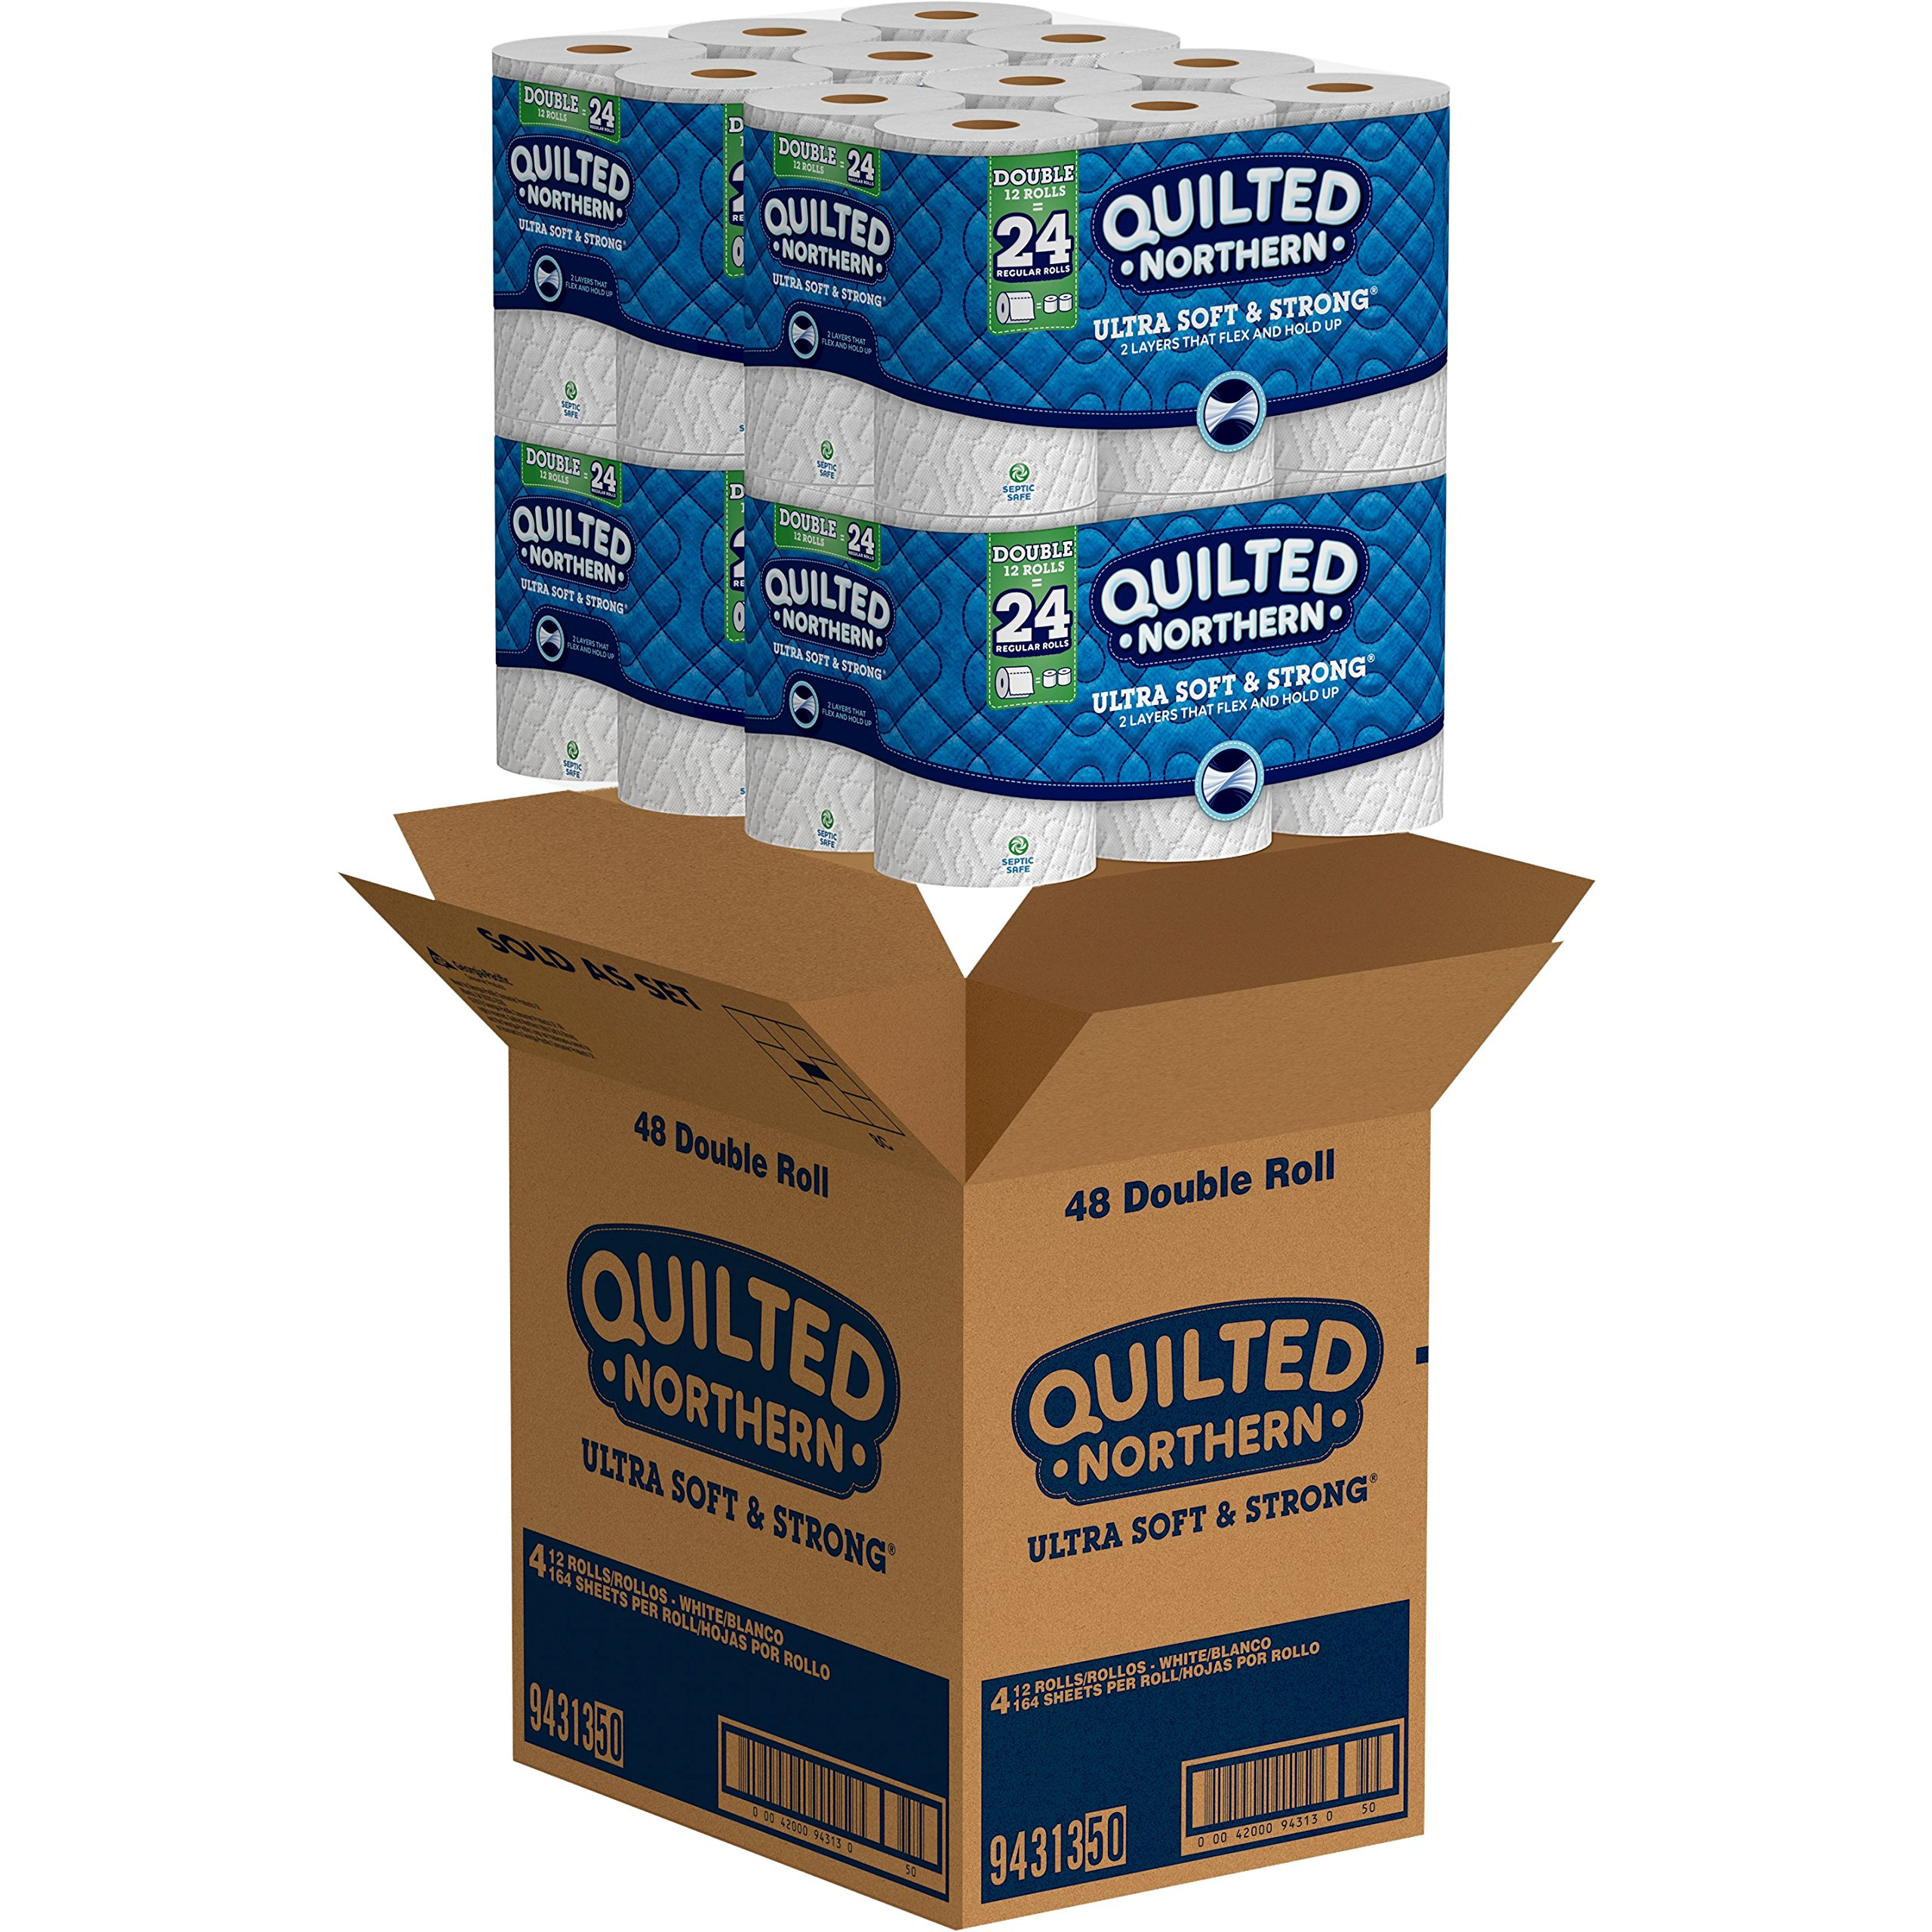 Quilted Northern Ultra Soft & Strong Toilet Paper, 48 Double Rolls, 164 2-Ply Sheets Per Roll by Quilted Northern (Image #2)